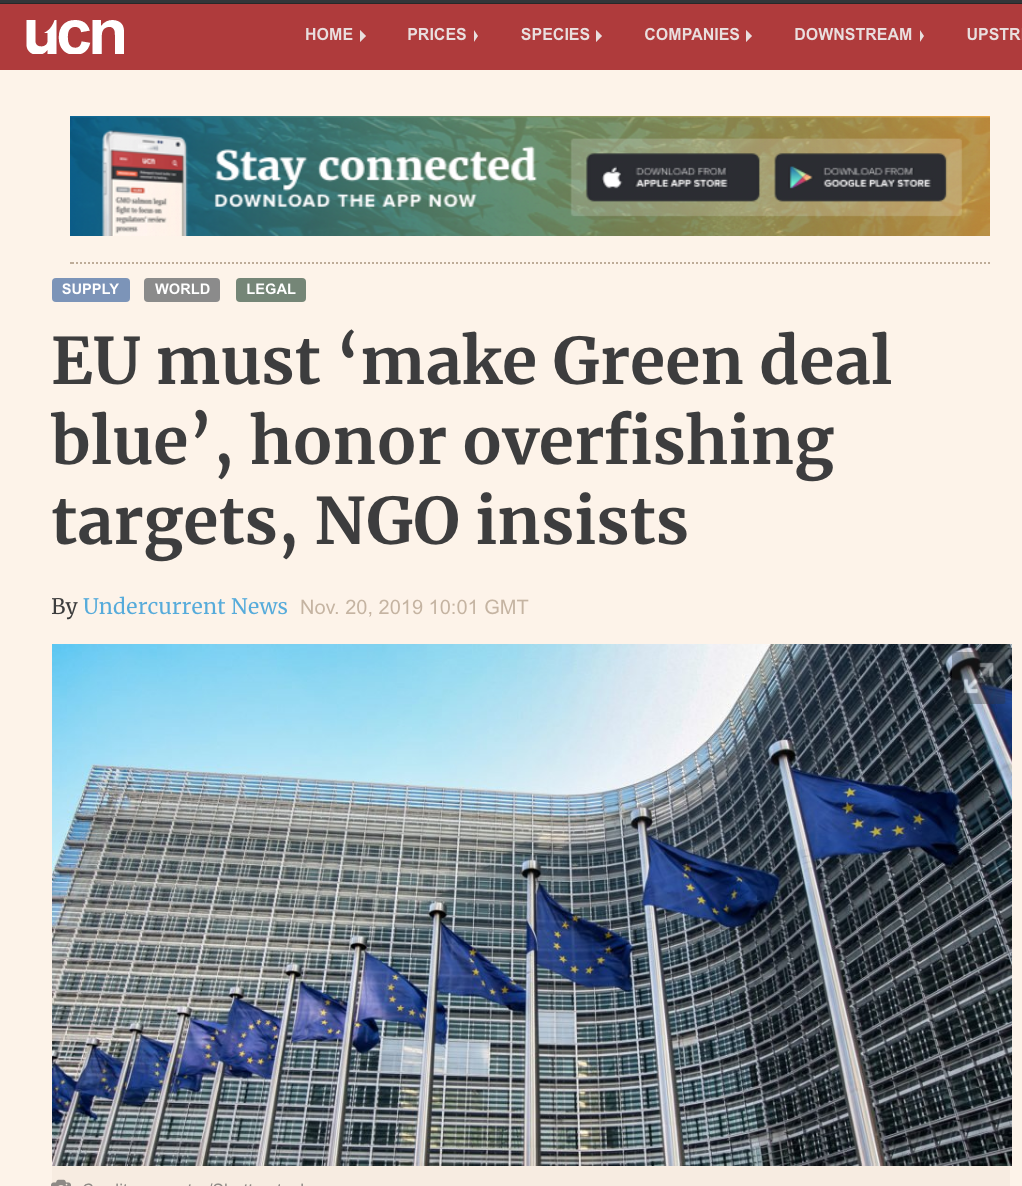 EU must 'make Green deal blue', honor overfishing targets, NGO insists